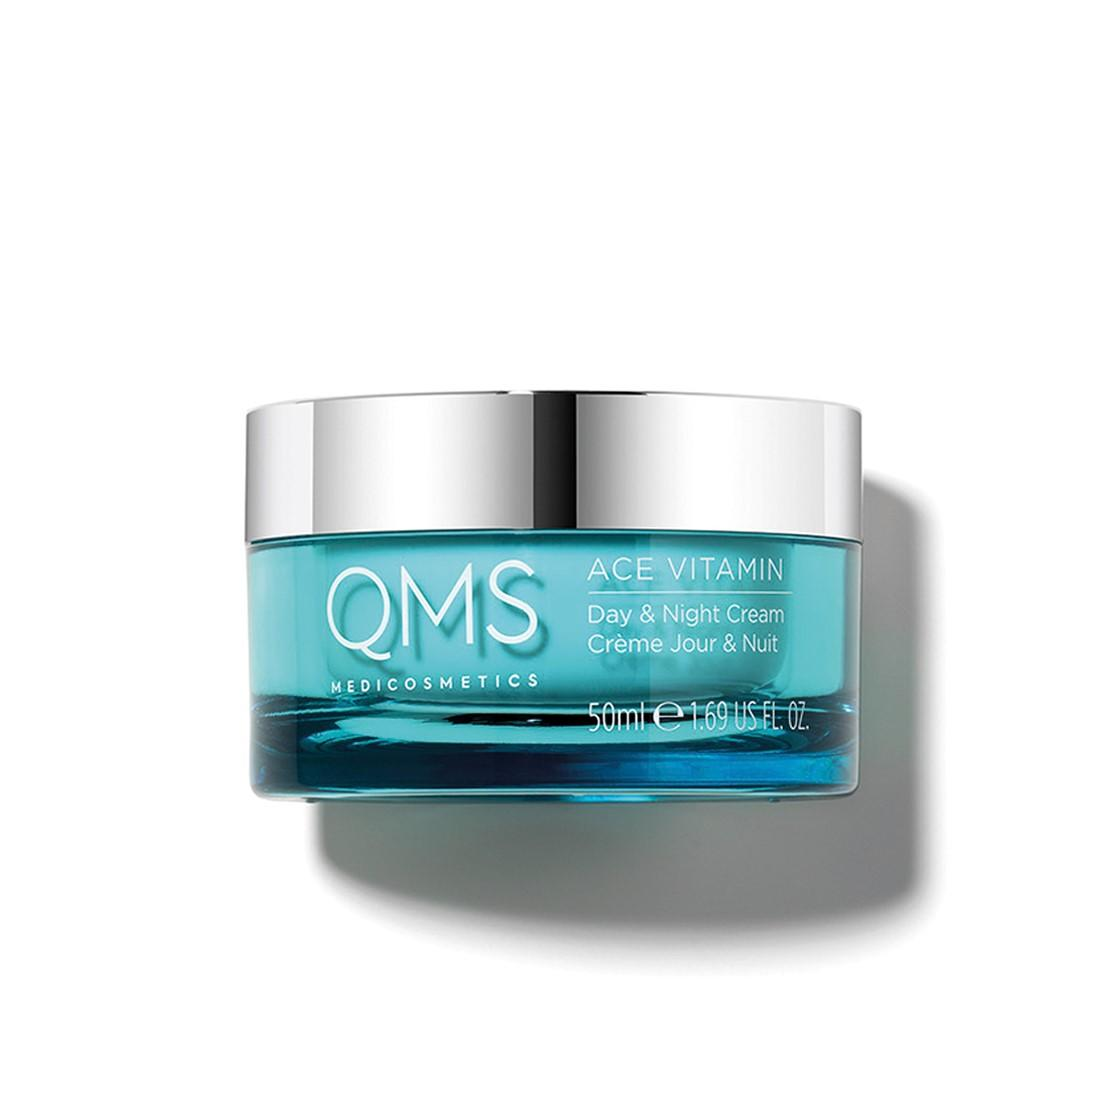 Pot of ACE Vitamin Day & Night Cream from QMS Medicosmetics, ACE Vitamin Cream for hydration 24h